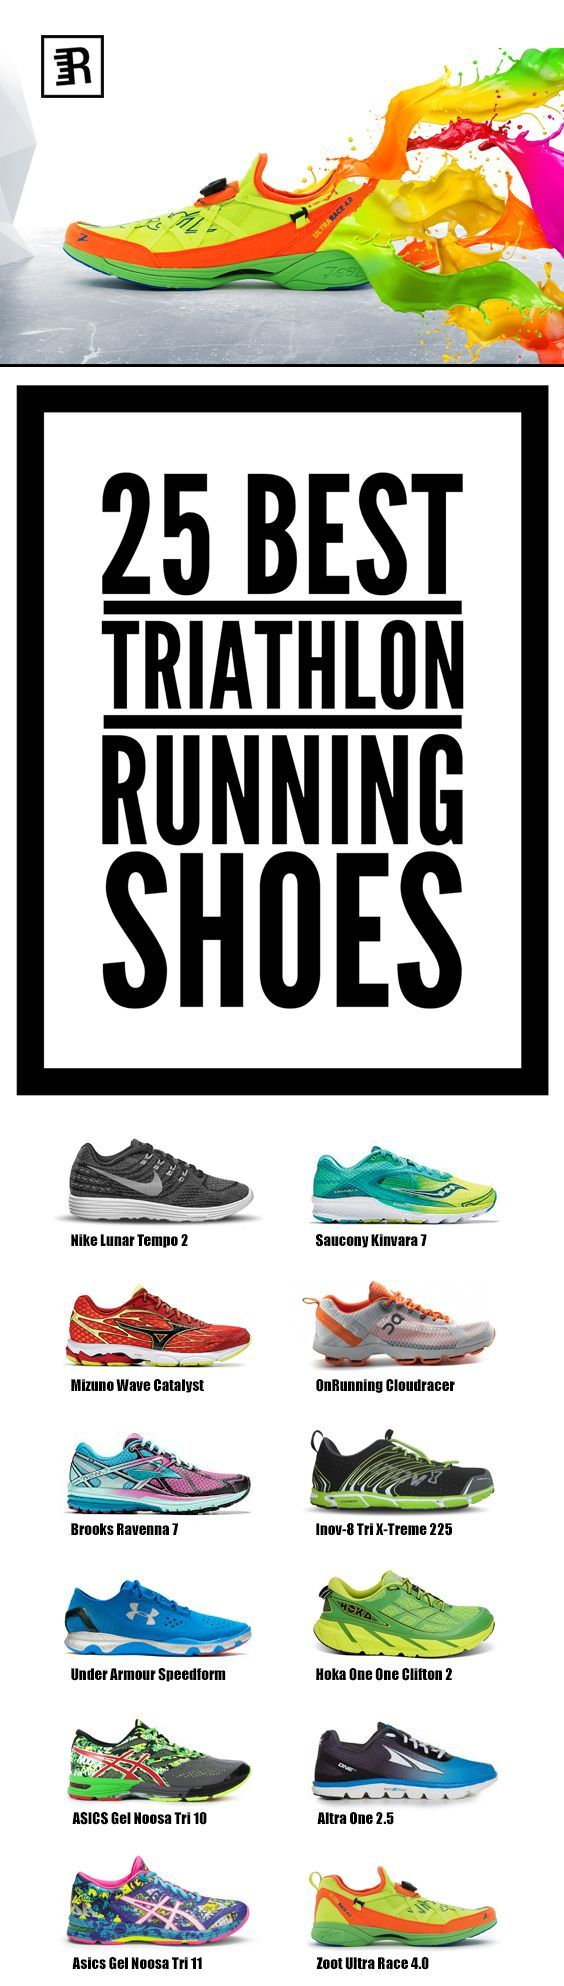 tri running shoes